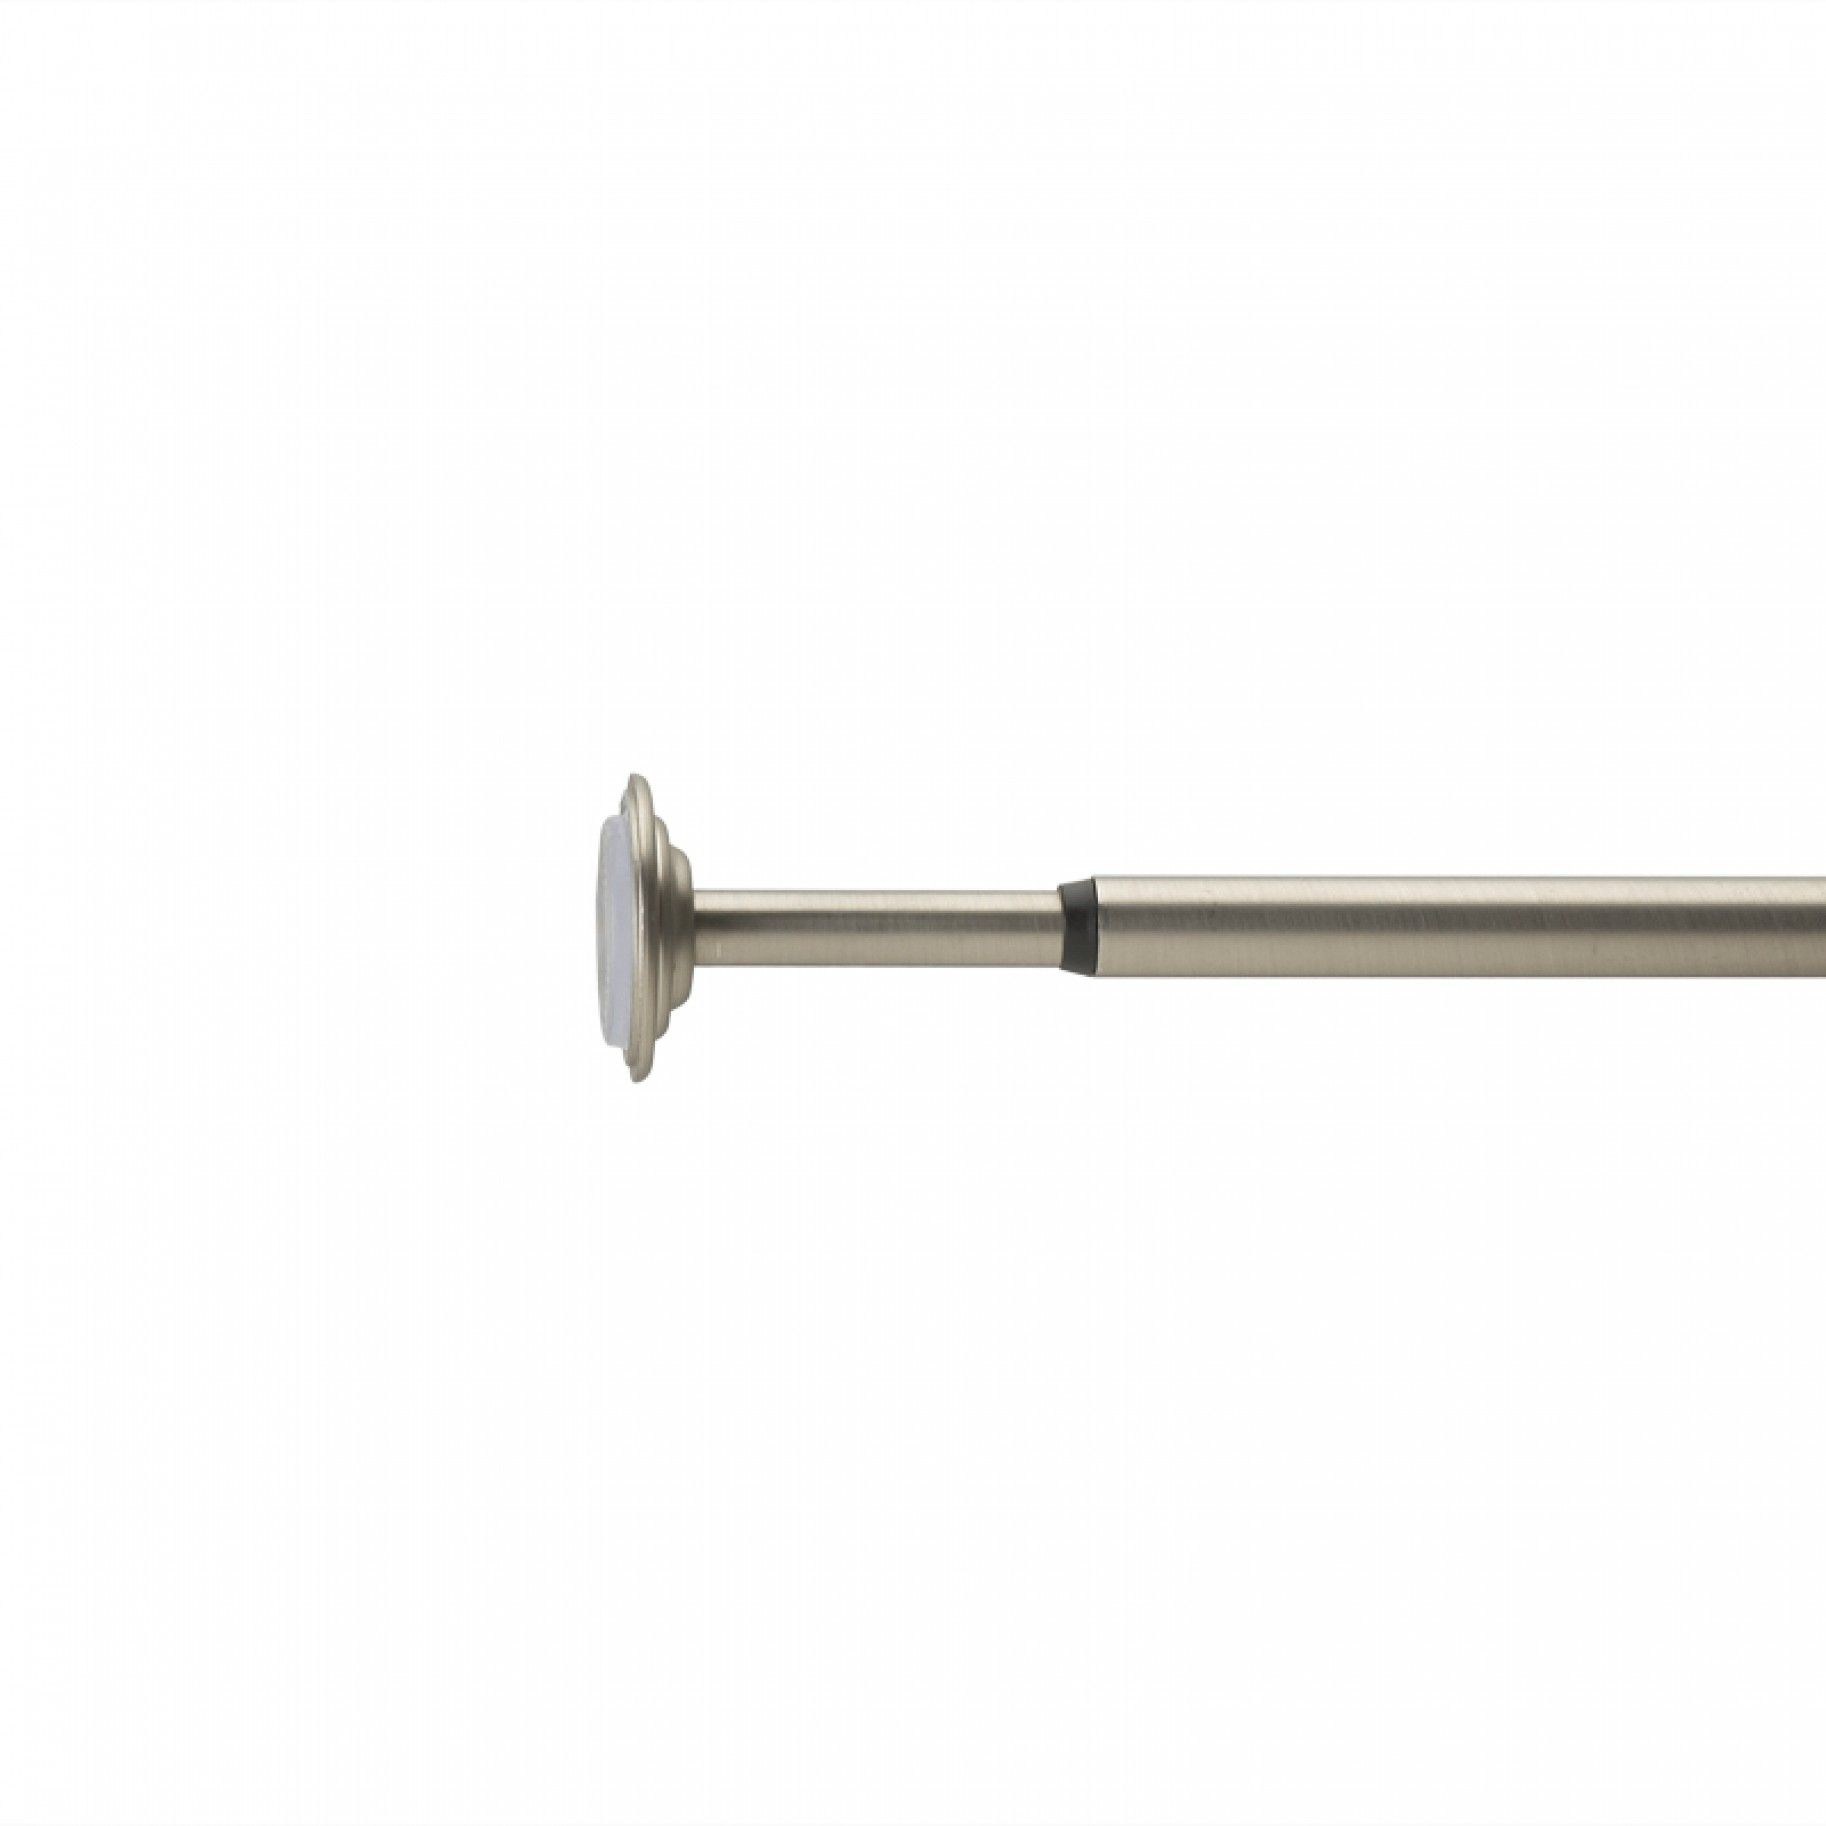 """use from floor to ceiling?  CORETTO TENSION ROD 54-90"""" (137.2 - 228.6 cm) 